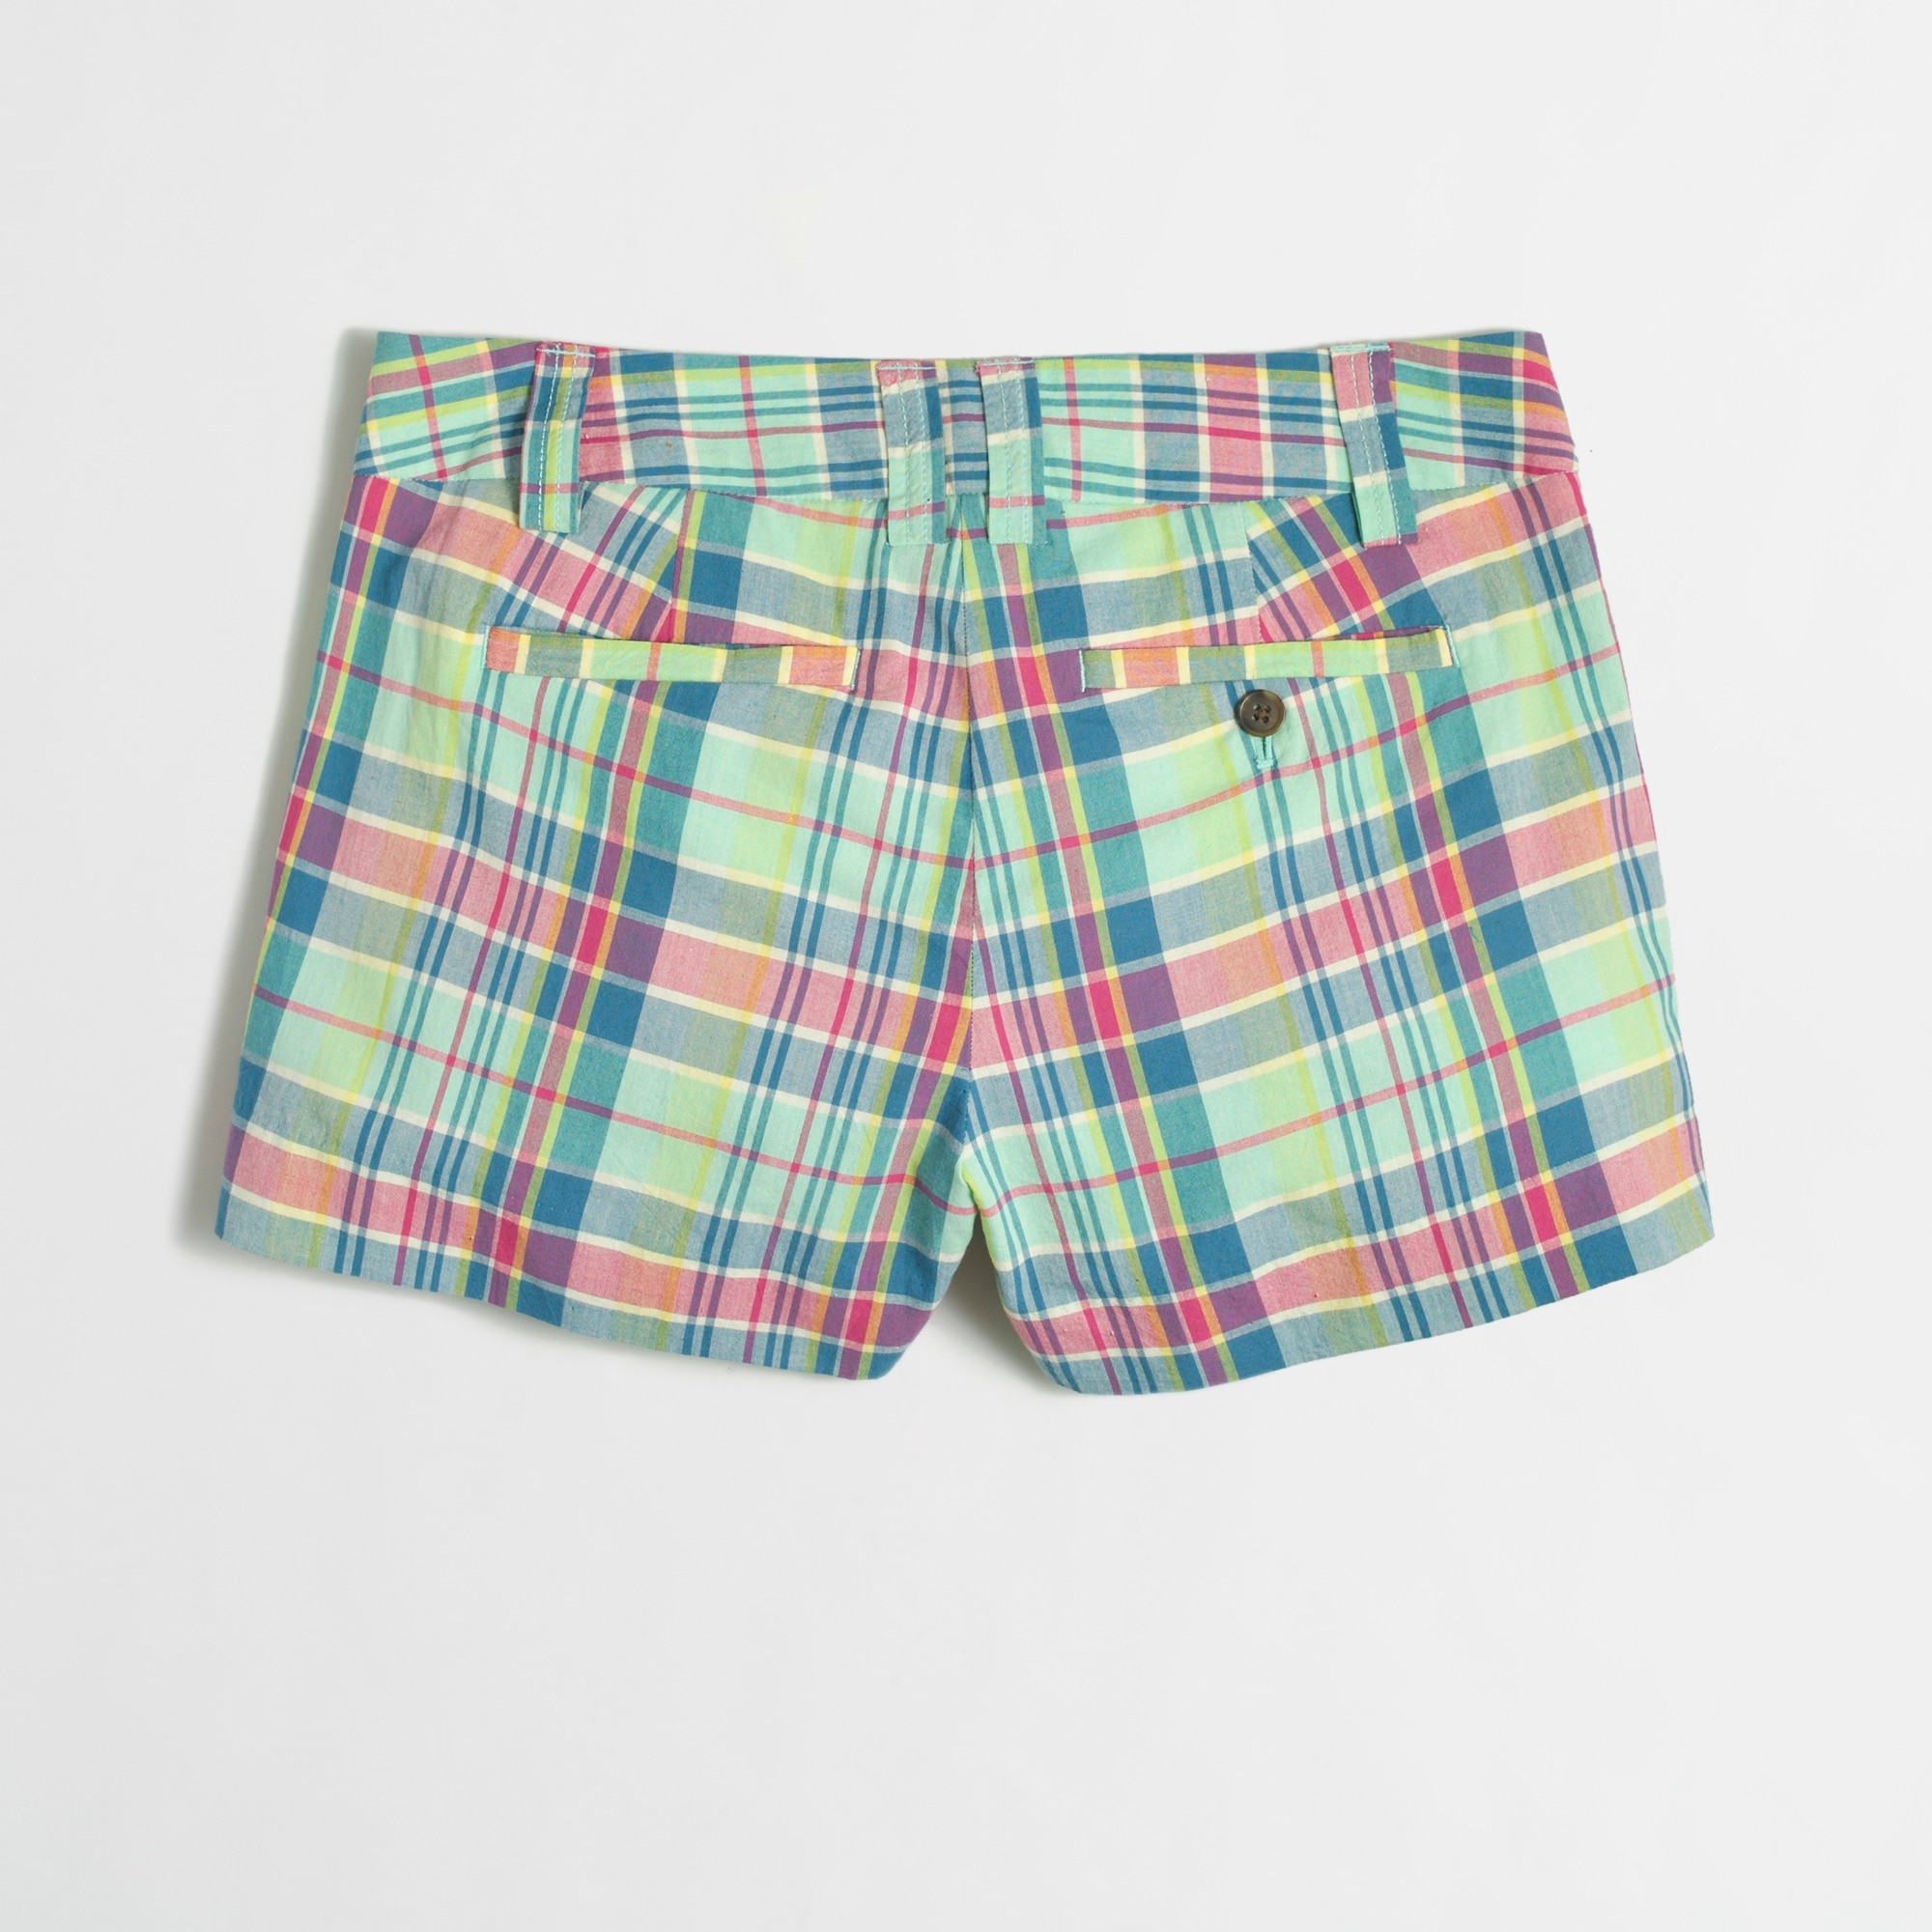 Image 1 for Factory summer plaid short